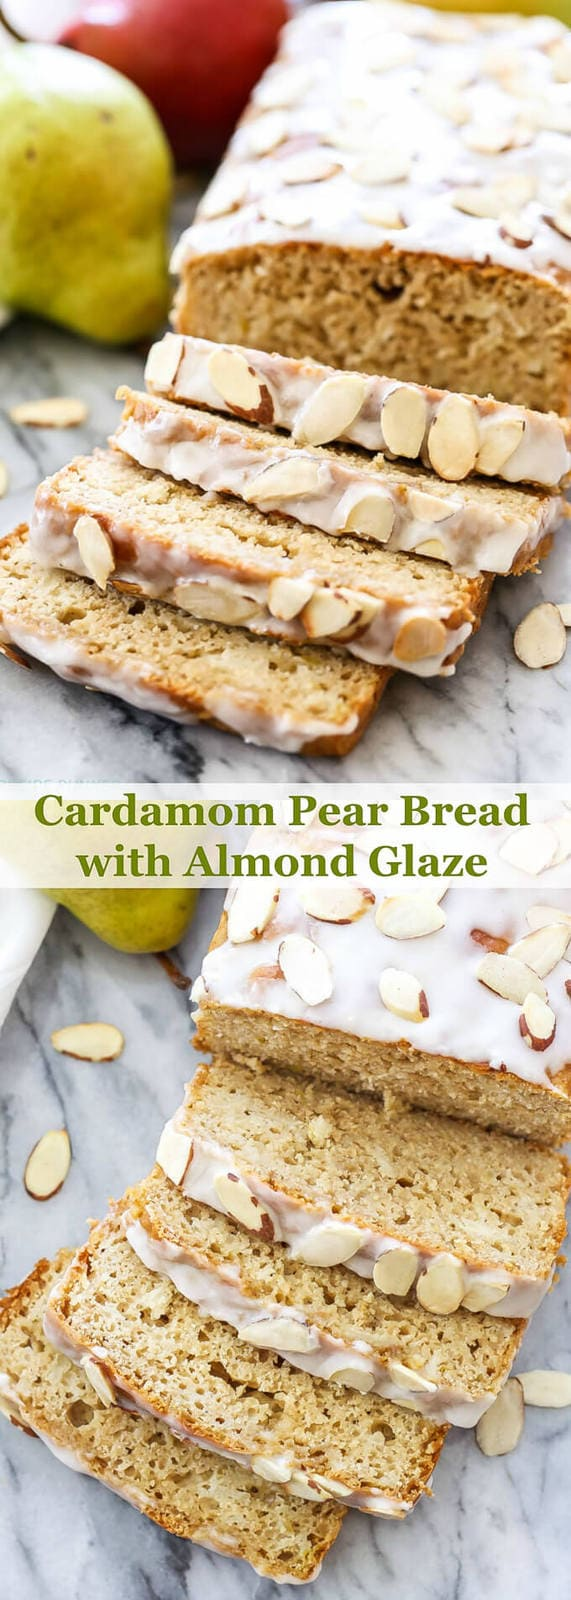 Cardamom Pear Bread with Almond Glaze is the perfect quick bread to make for brunch or a holiday breakfast! The flavors of warm, citrusy cardamom, juicy pears and a sweet almond glaze will have you grabbing a second slice! | www.reciperunner.com